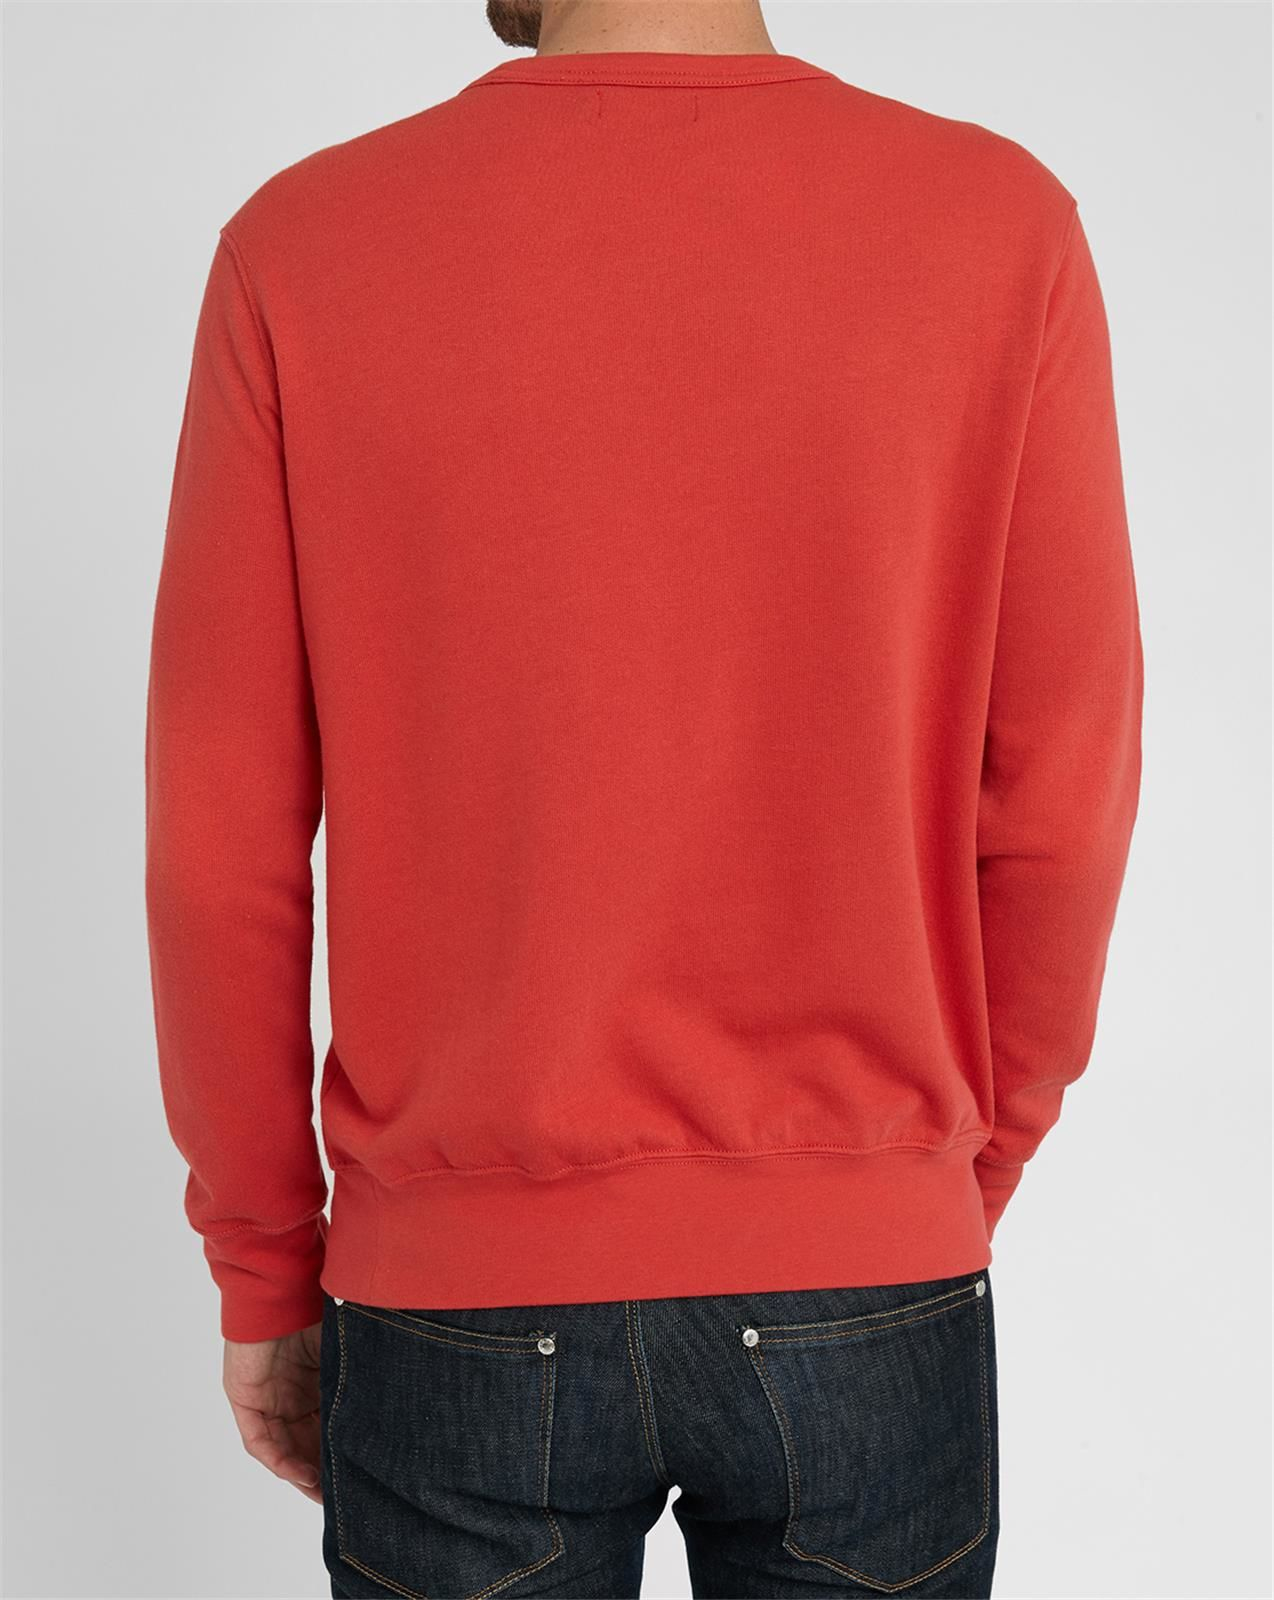 polo ralph lauren red faded round neck sweatshirt in red. Black Bedroom Furniture Sets. Home Design Ideas